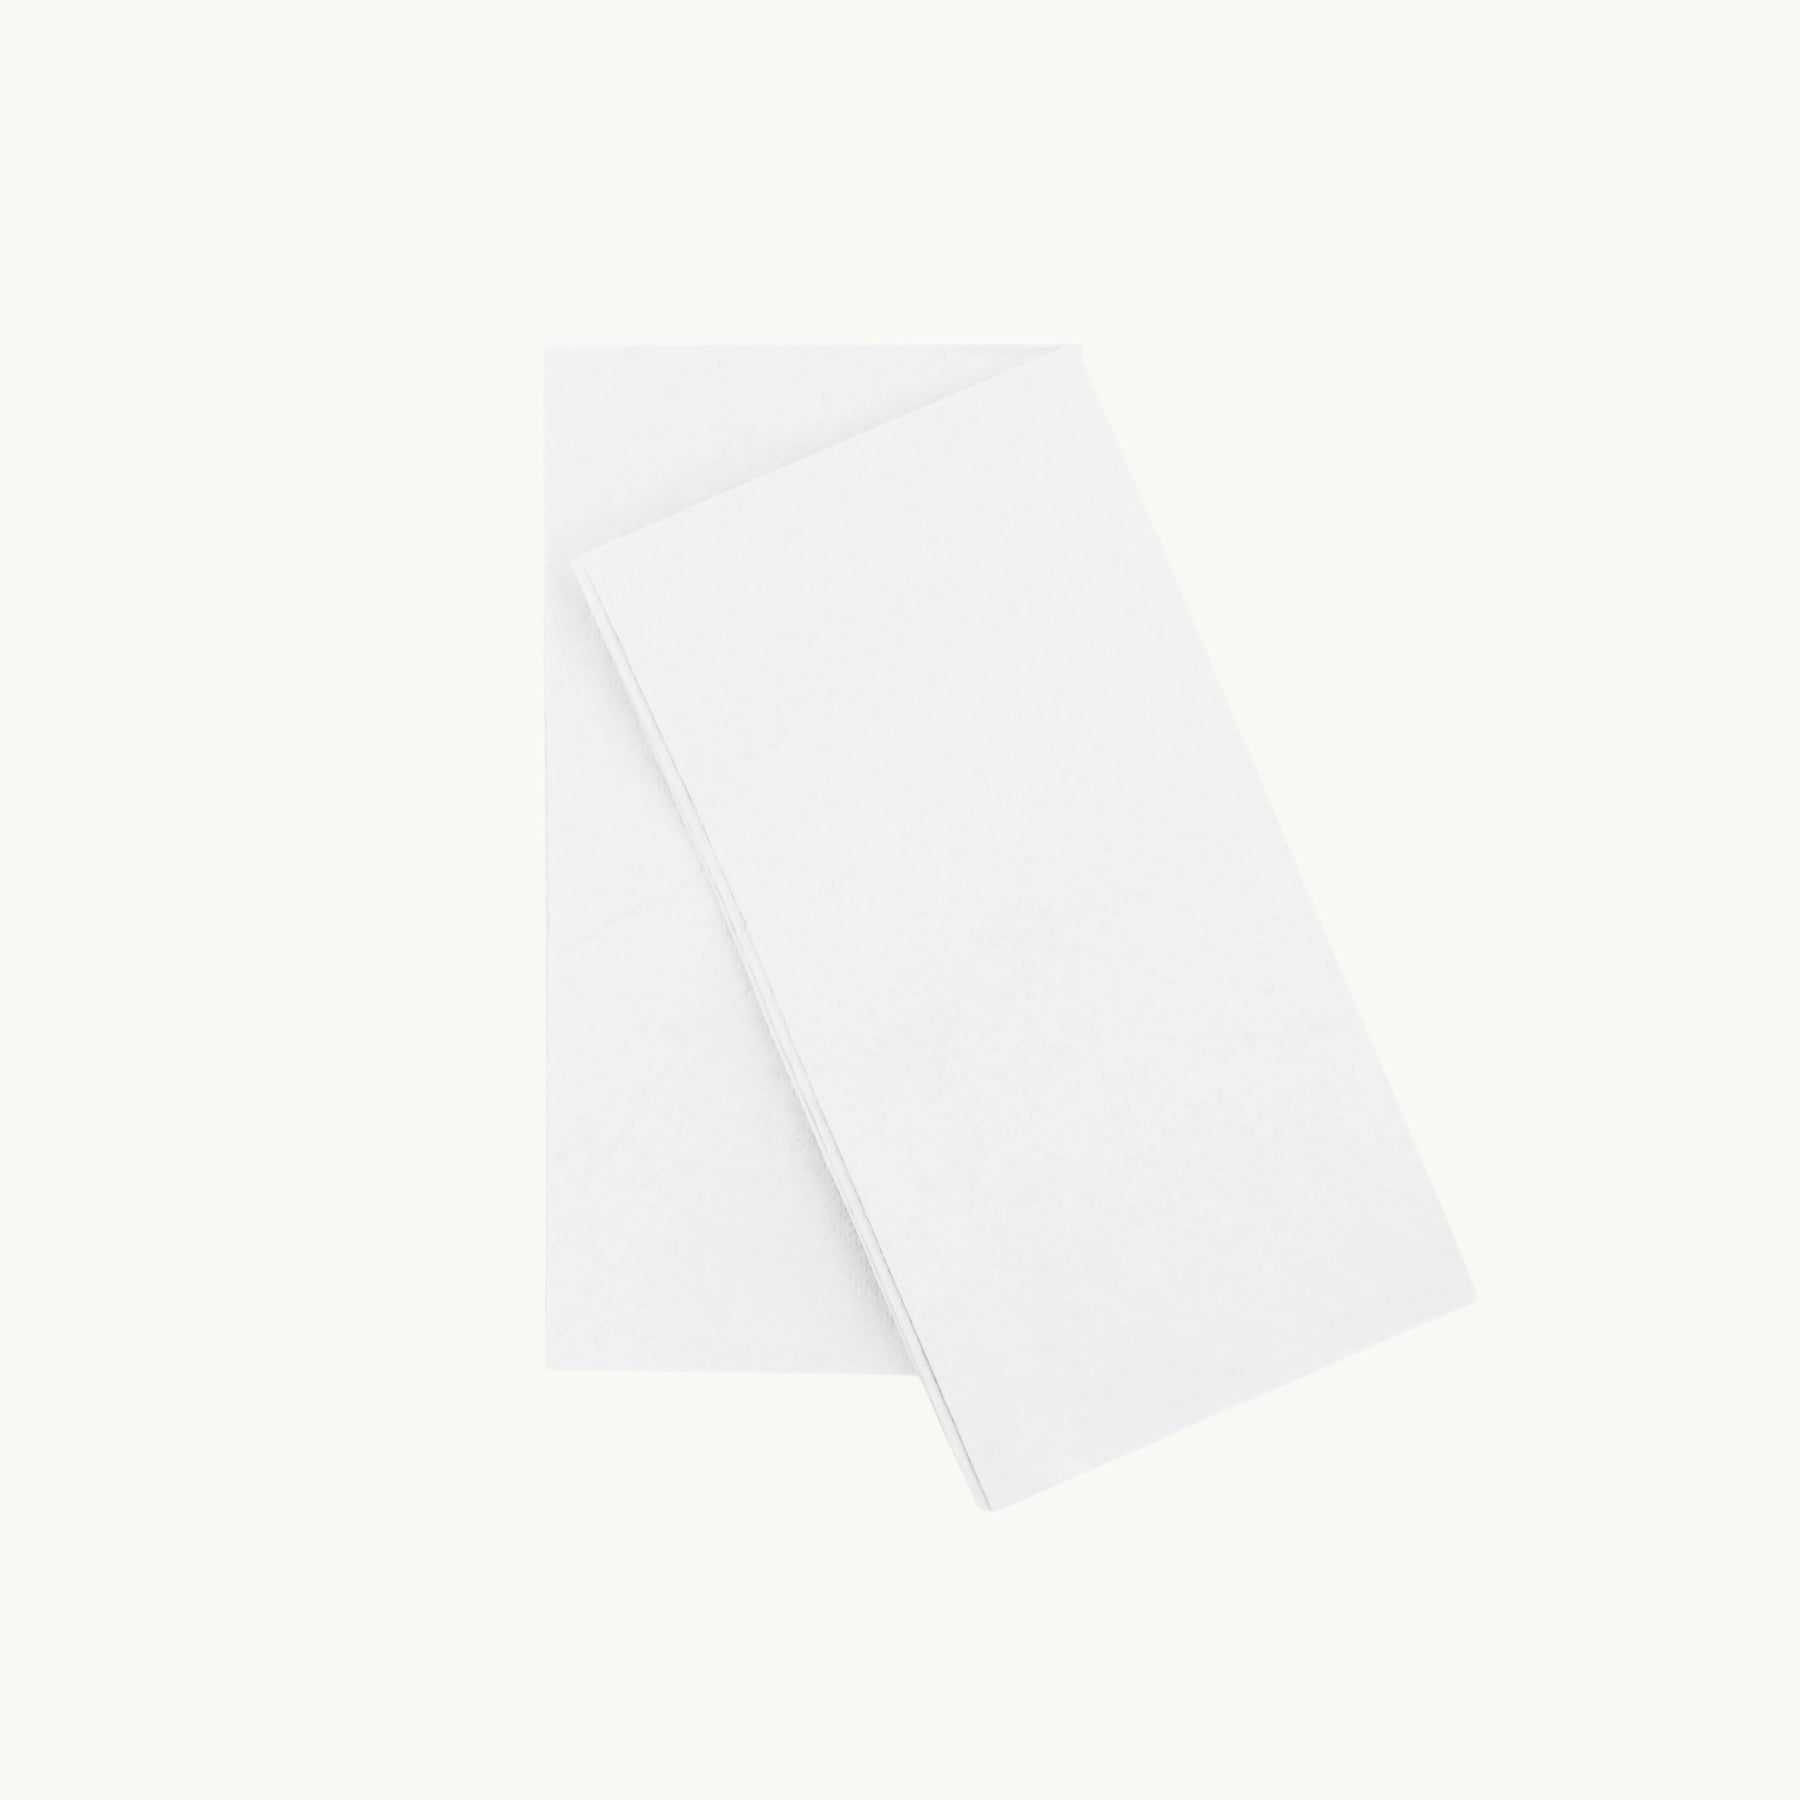 Eco Napkin - 8 Fold Quilted - Lunch - White - FSC RECYCLED